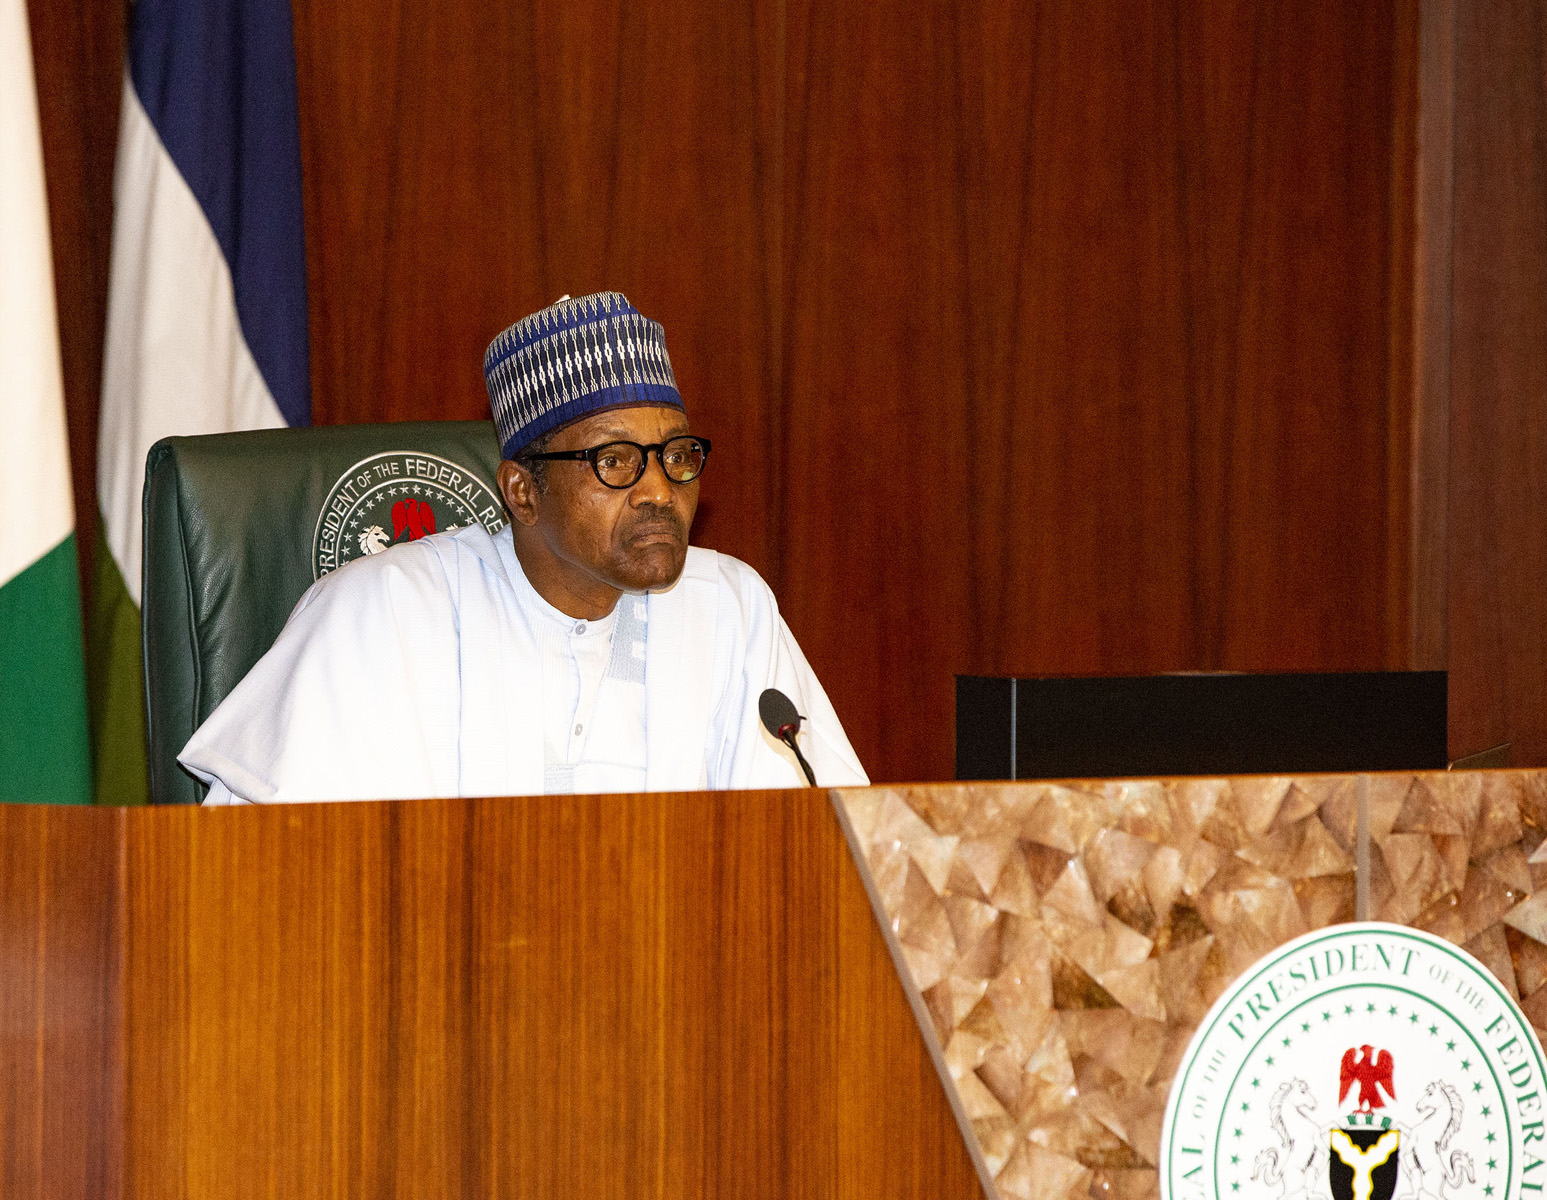 PRESIDENT BUHARI PRESIDES OVER VALEDICTORY SESSION 0A - FEC approves N2.4bn for Aviation Security Shooting Range